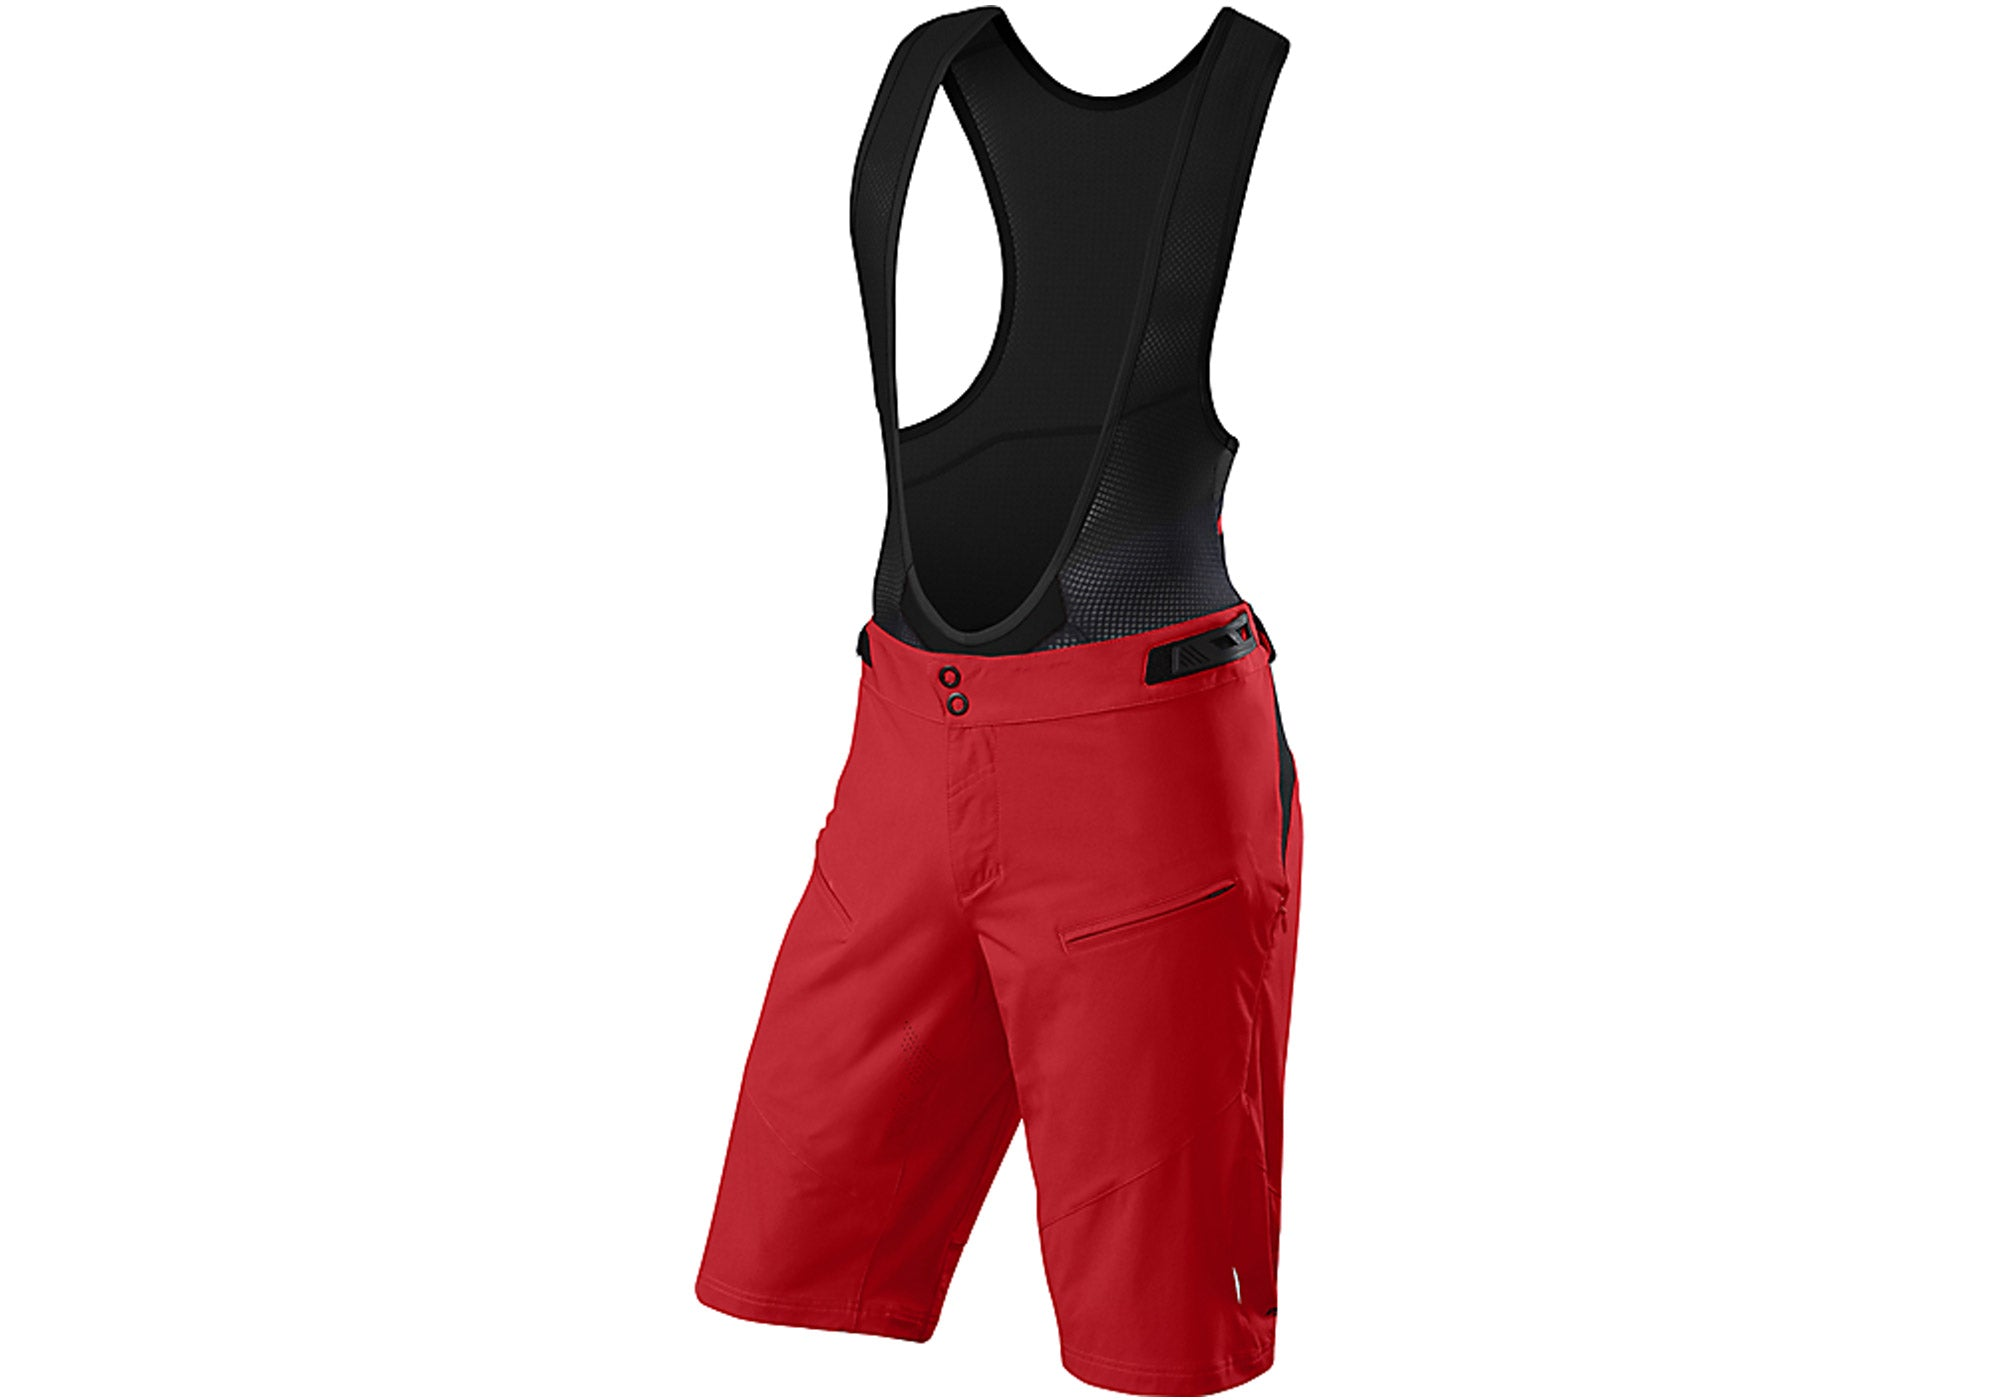 Specialized Enduro Pro Bib Short Mens Red Size 38 Only